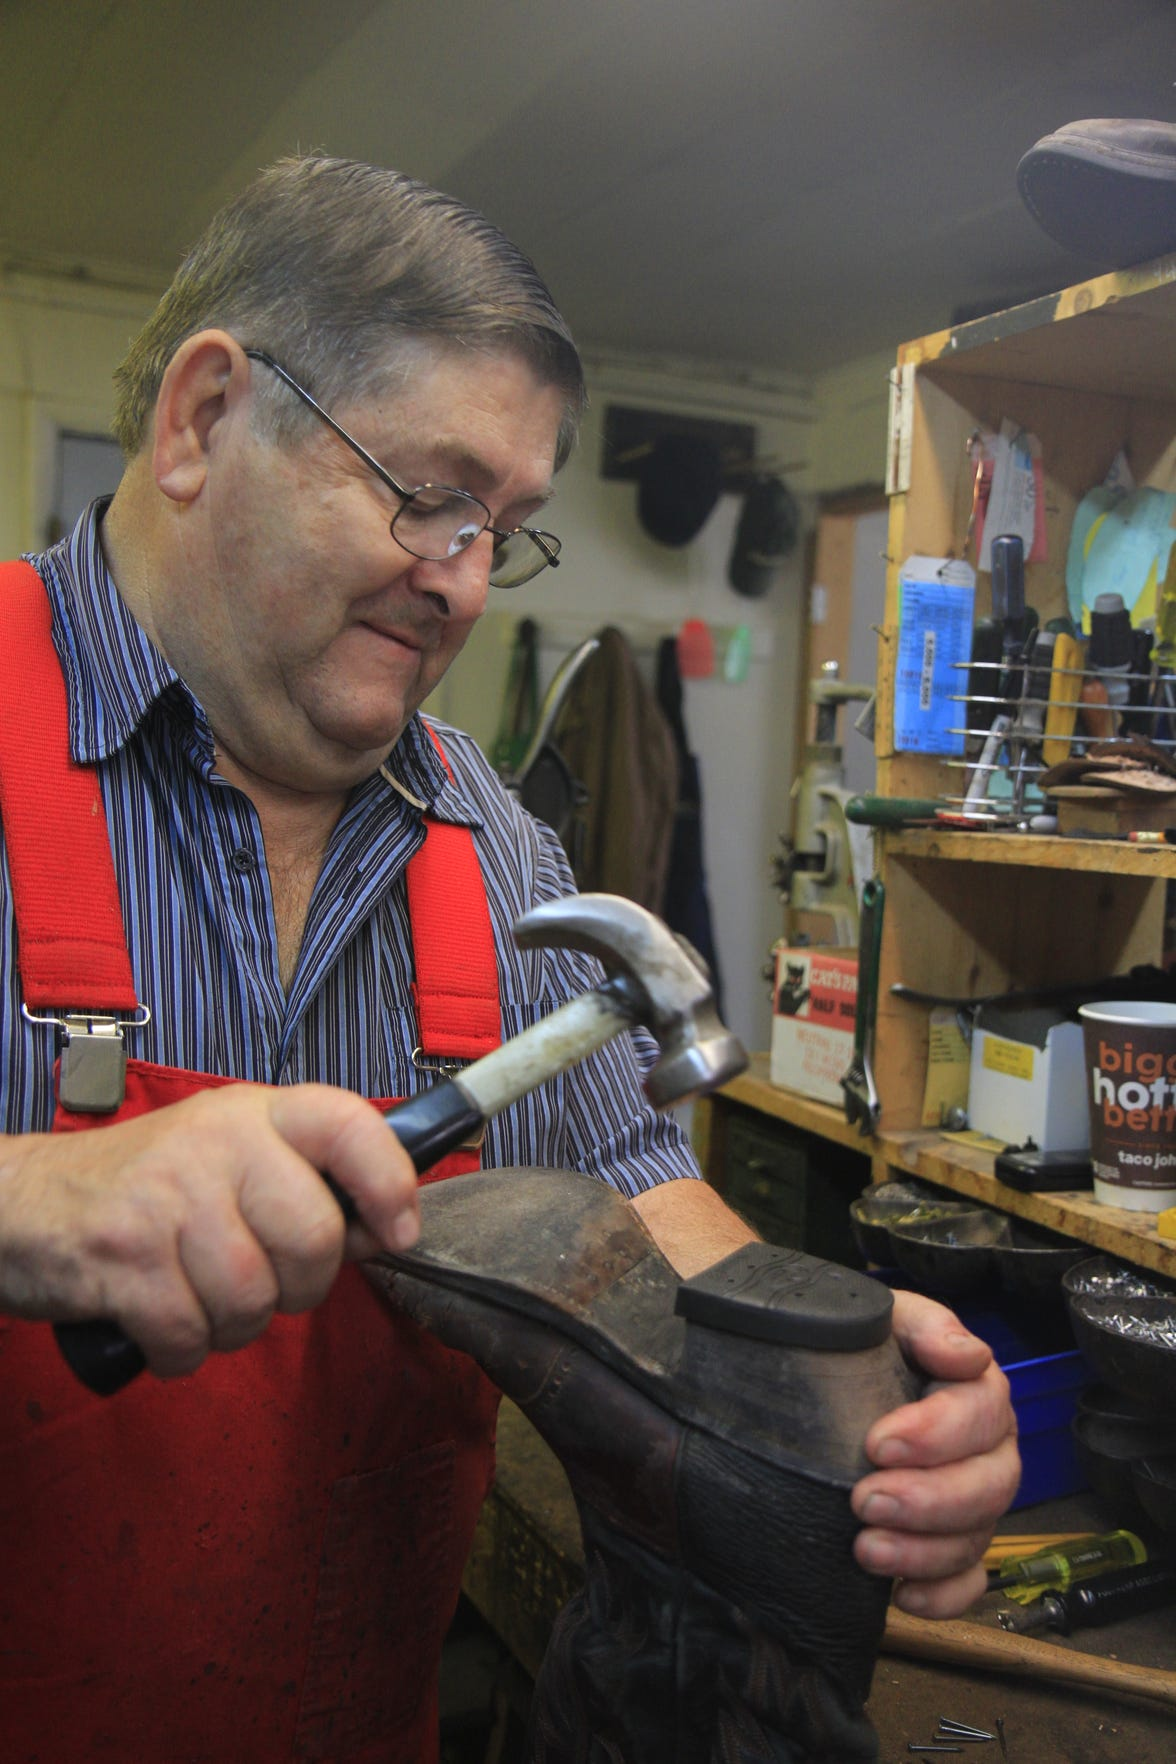 Dennis Siller working repairing a boot at Siller's Boot and Shoe Repair on October 3, 2019.